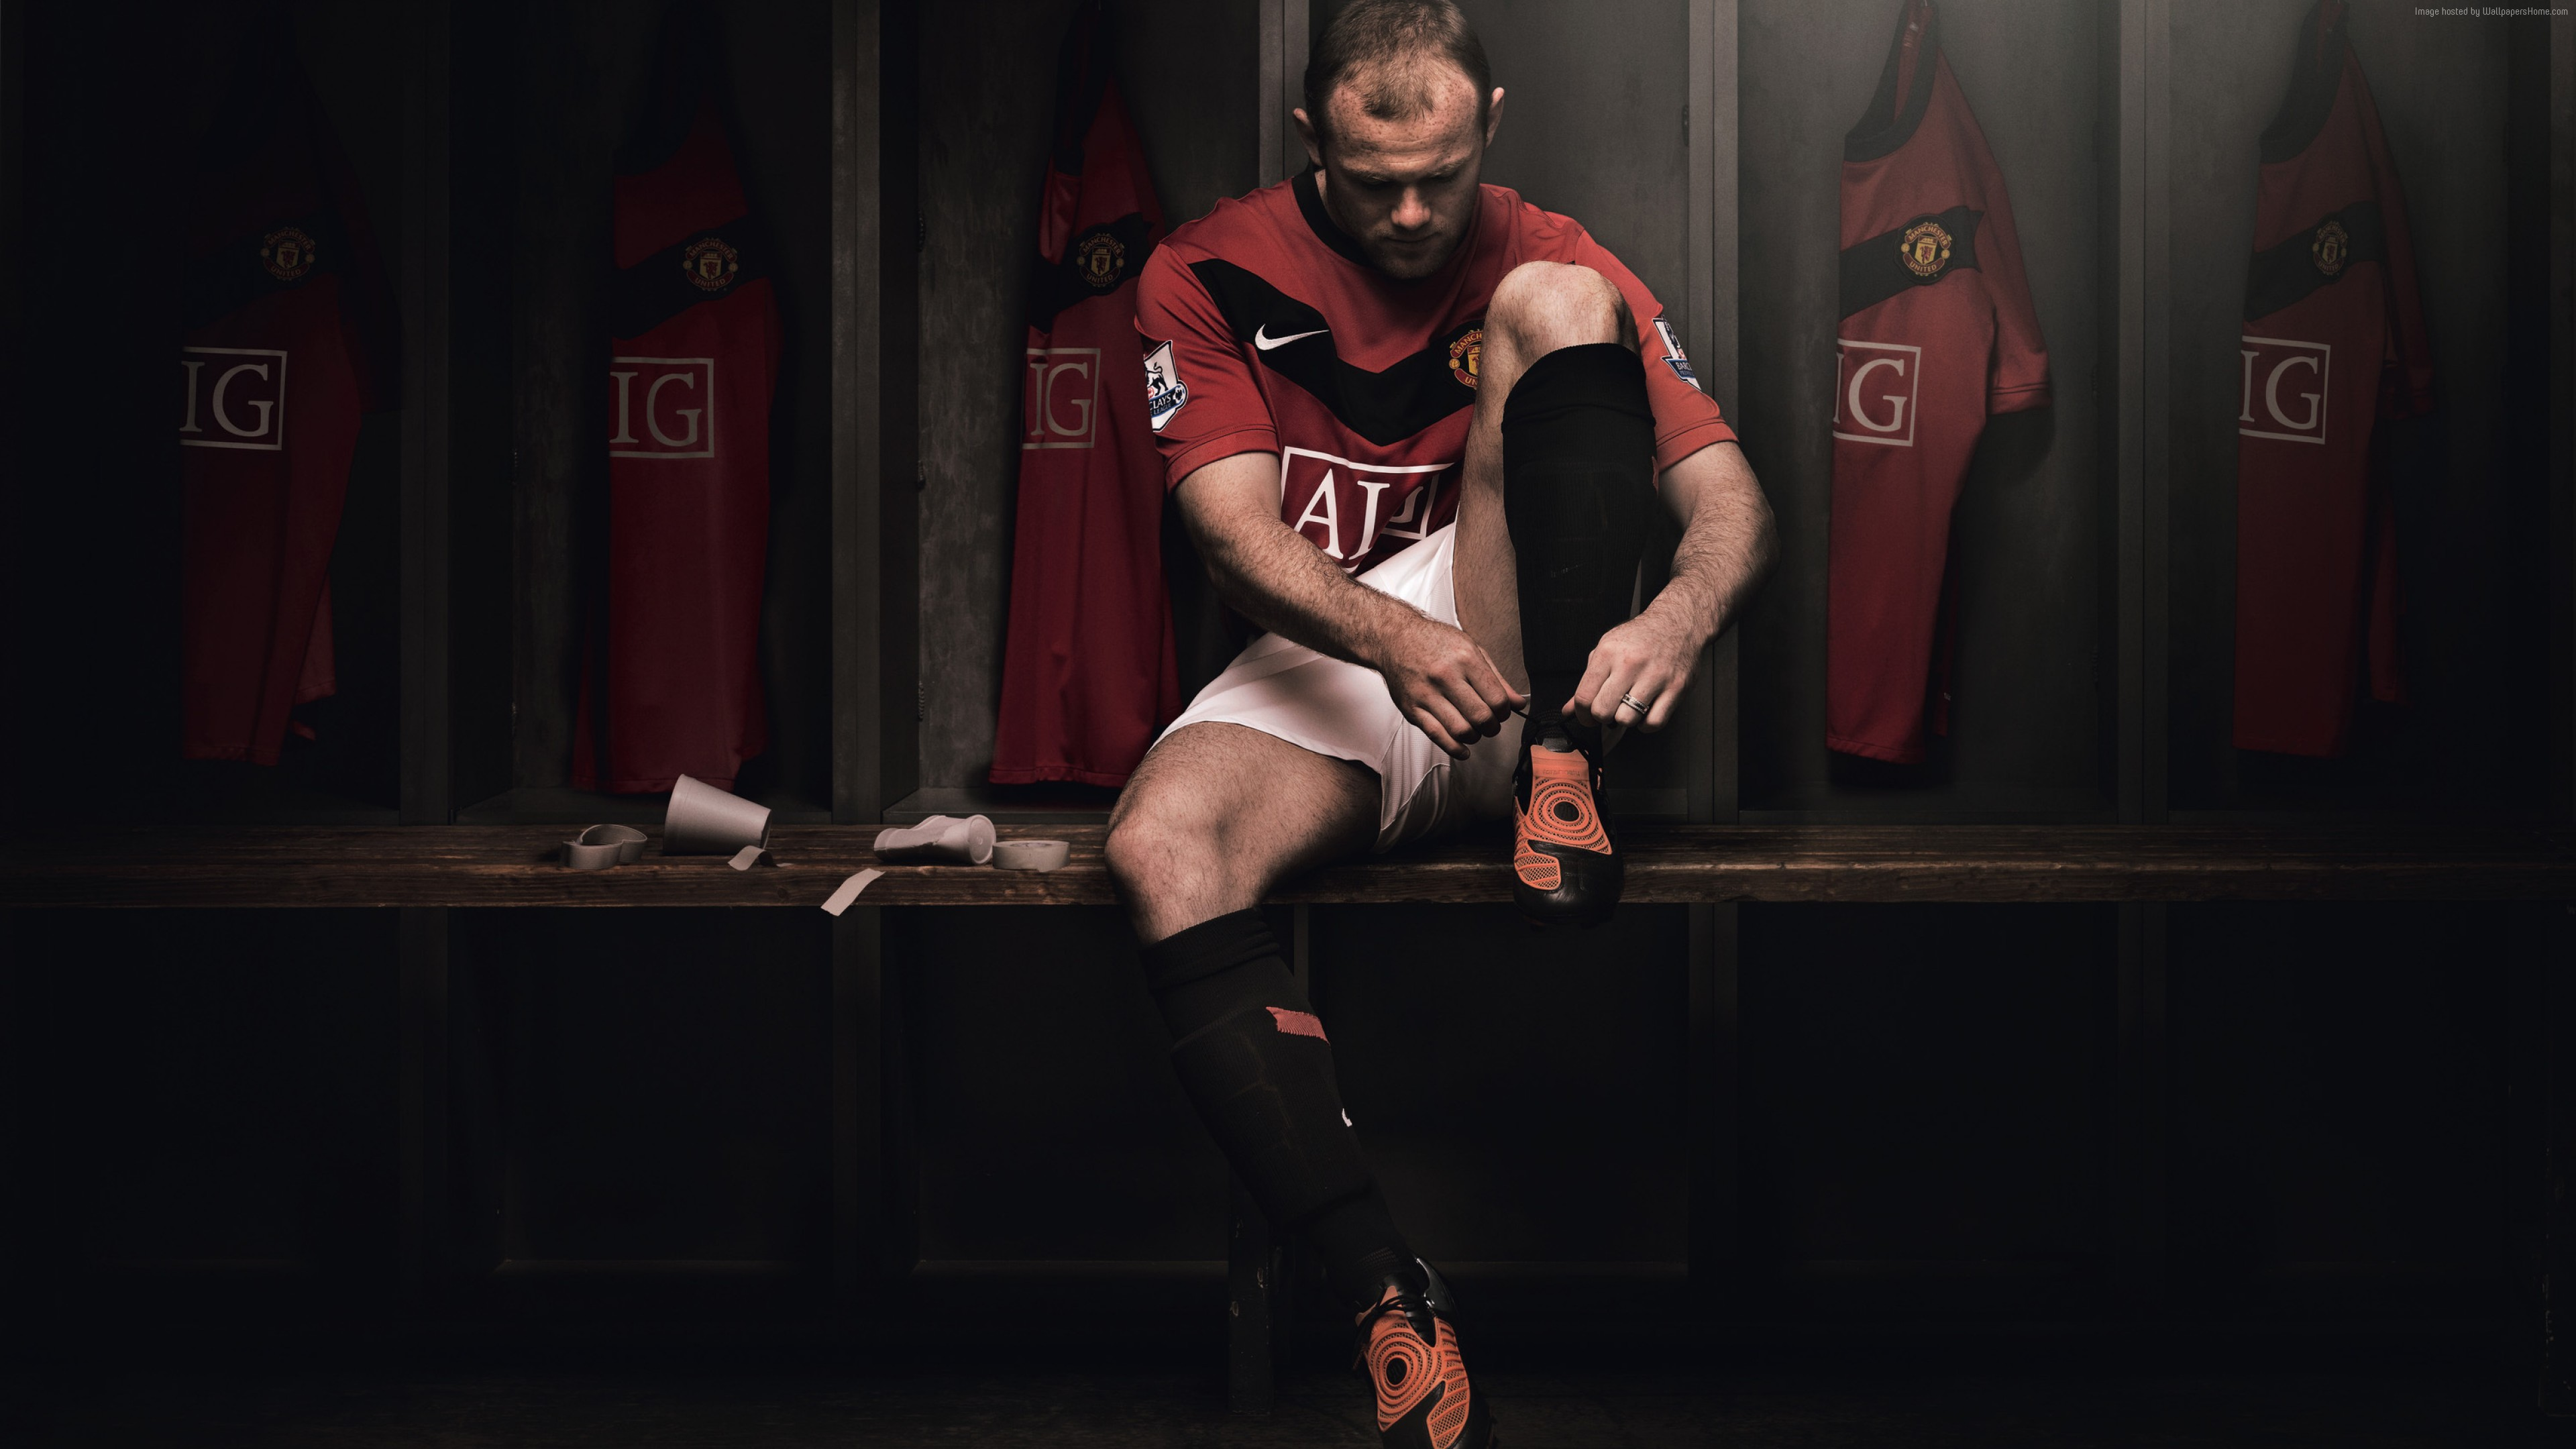 Wallpaper Football, Wayne Rooney, The best football players, Manchester United, Sport